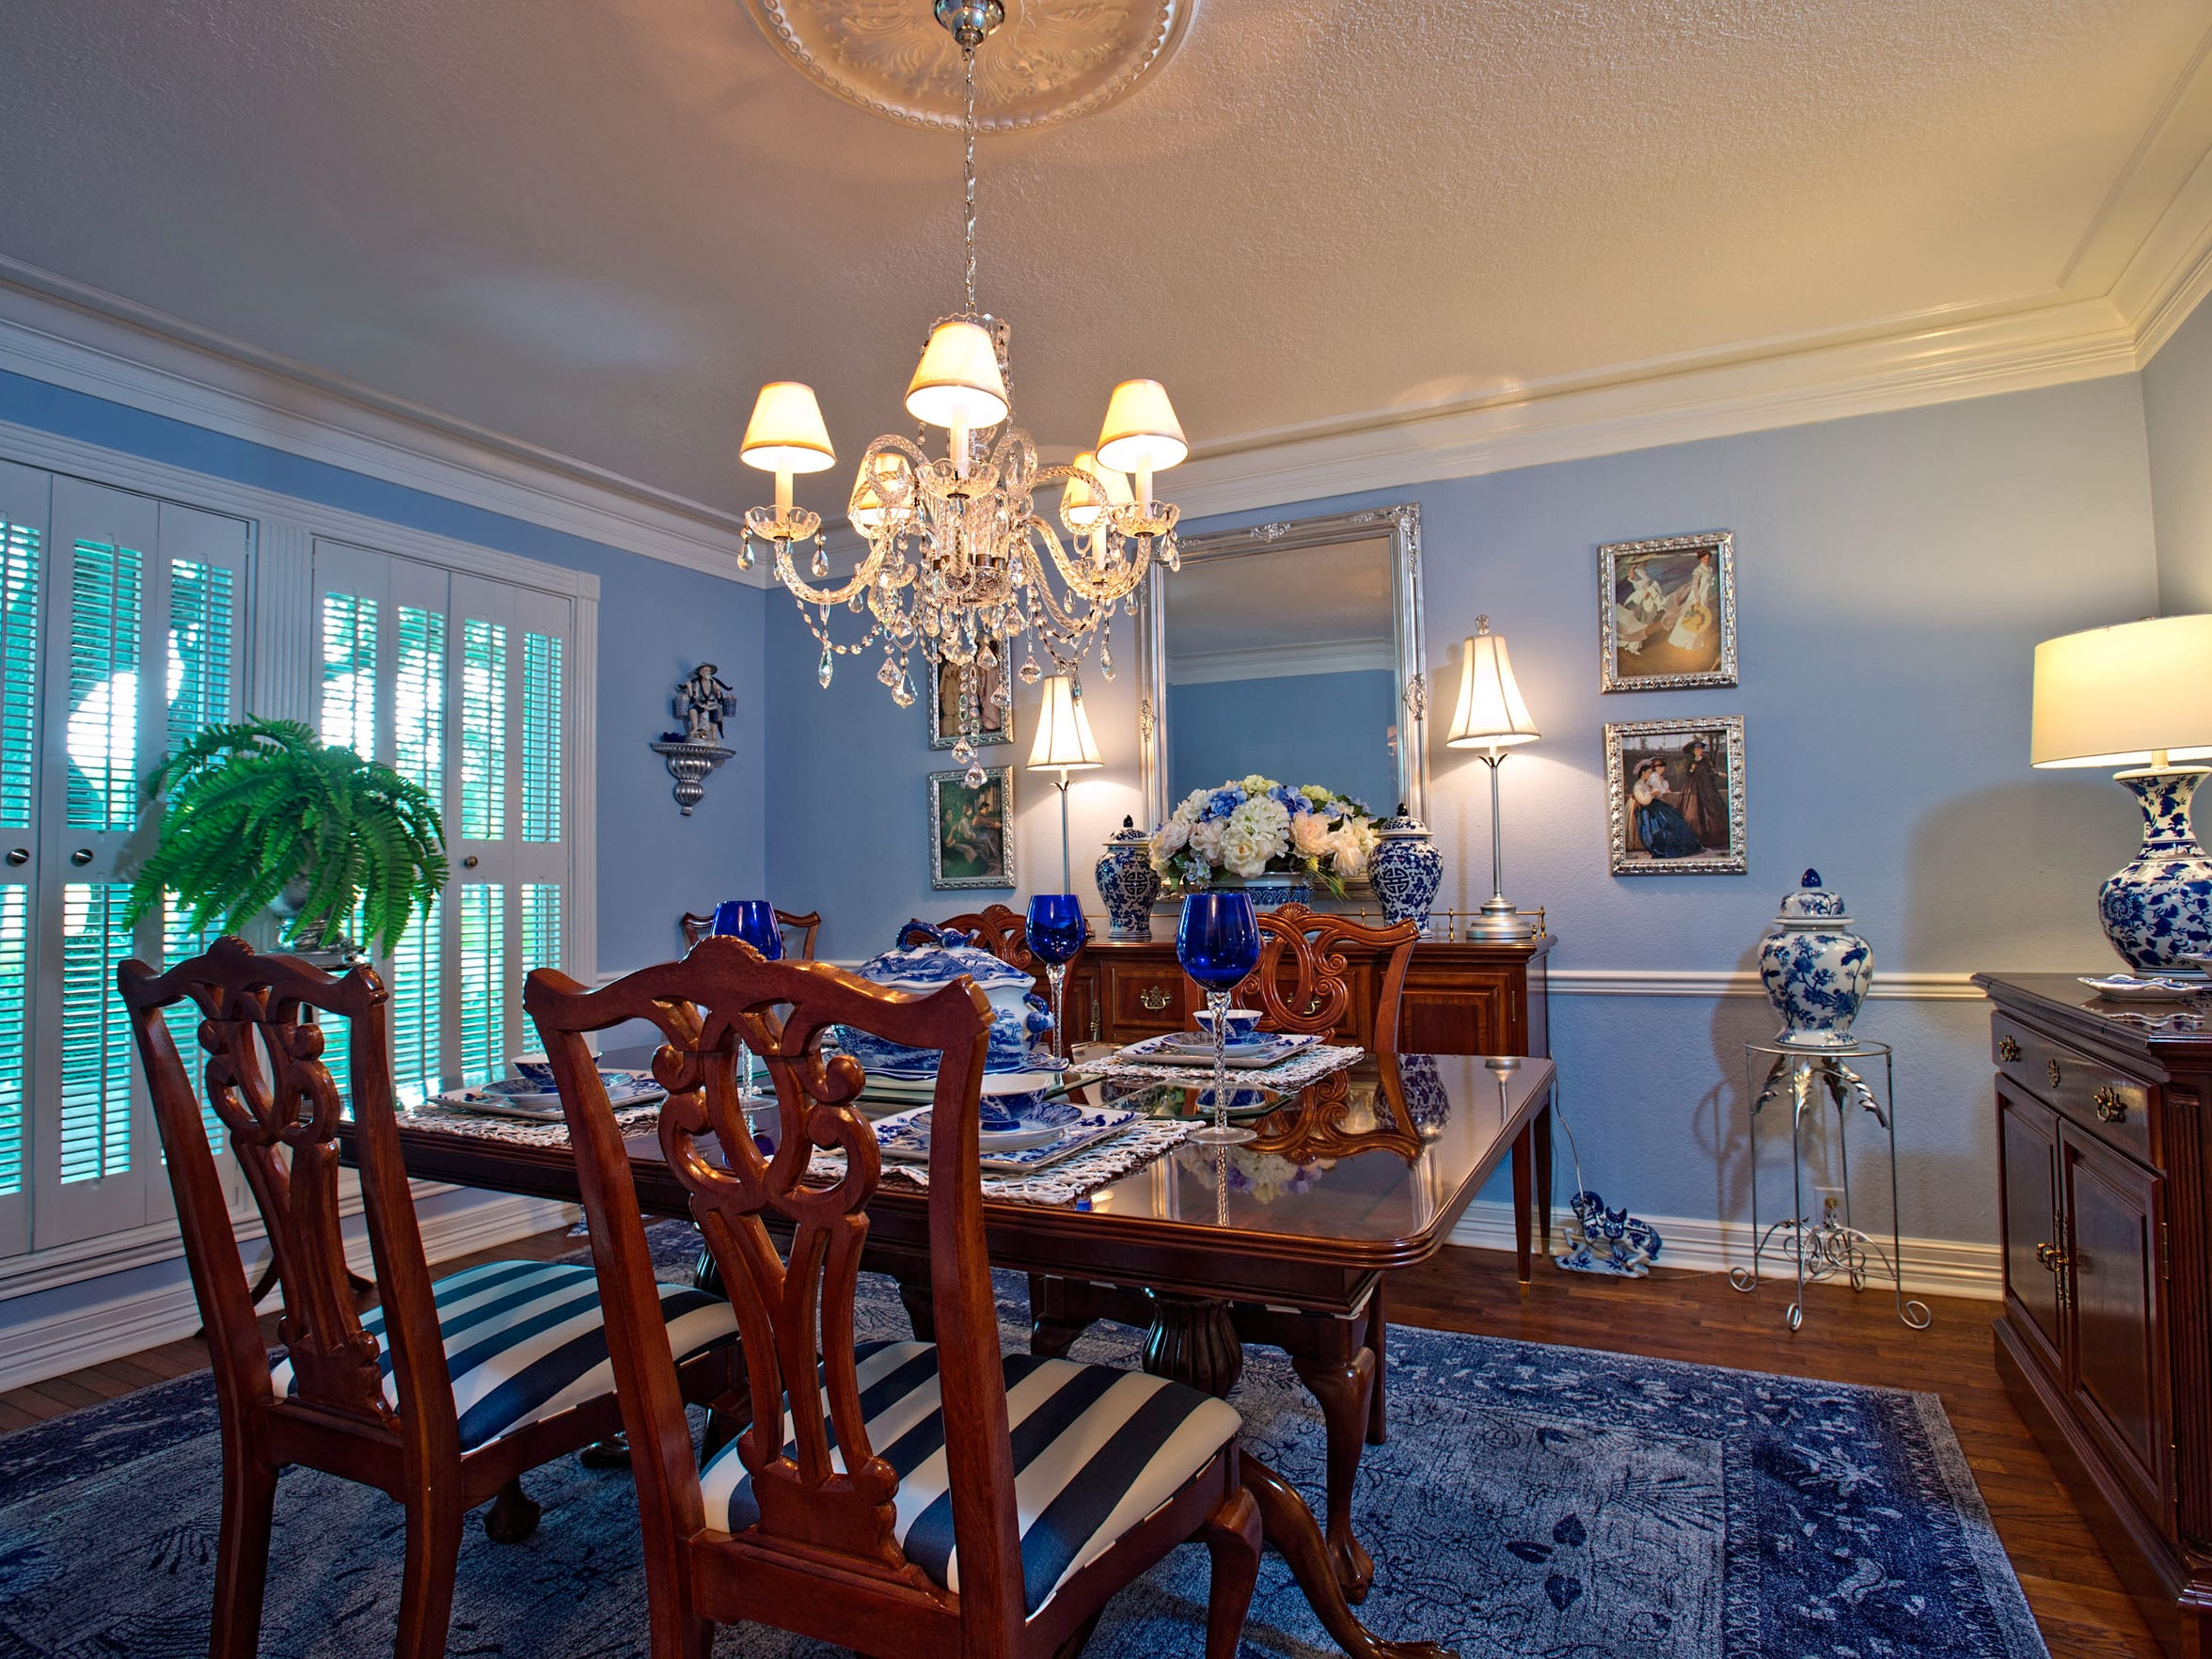 The formal dining area is picture perfect in baby blue with wide crown molding, a white shuttered picture window; illuminated with a beautiful crystal chandelier